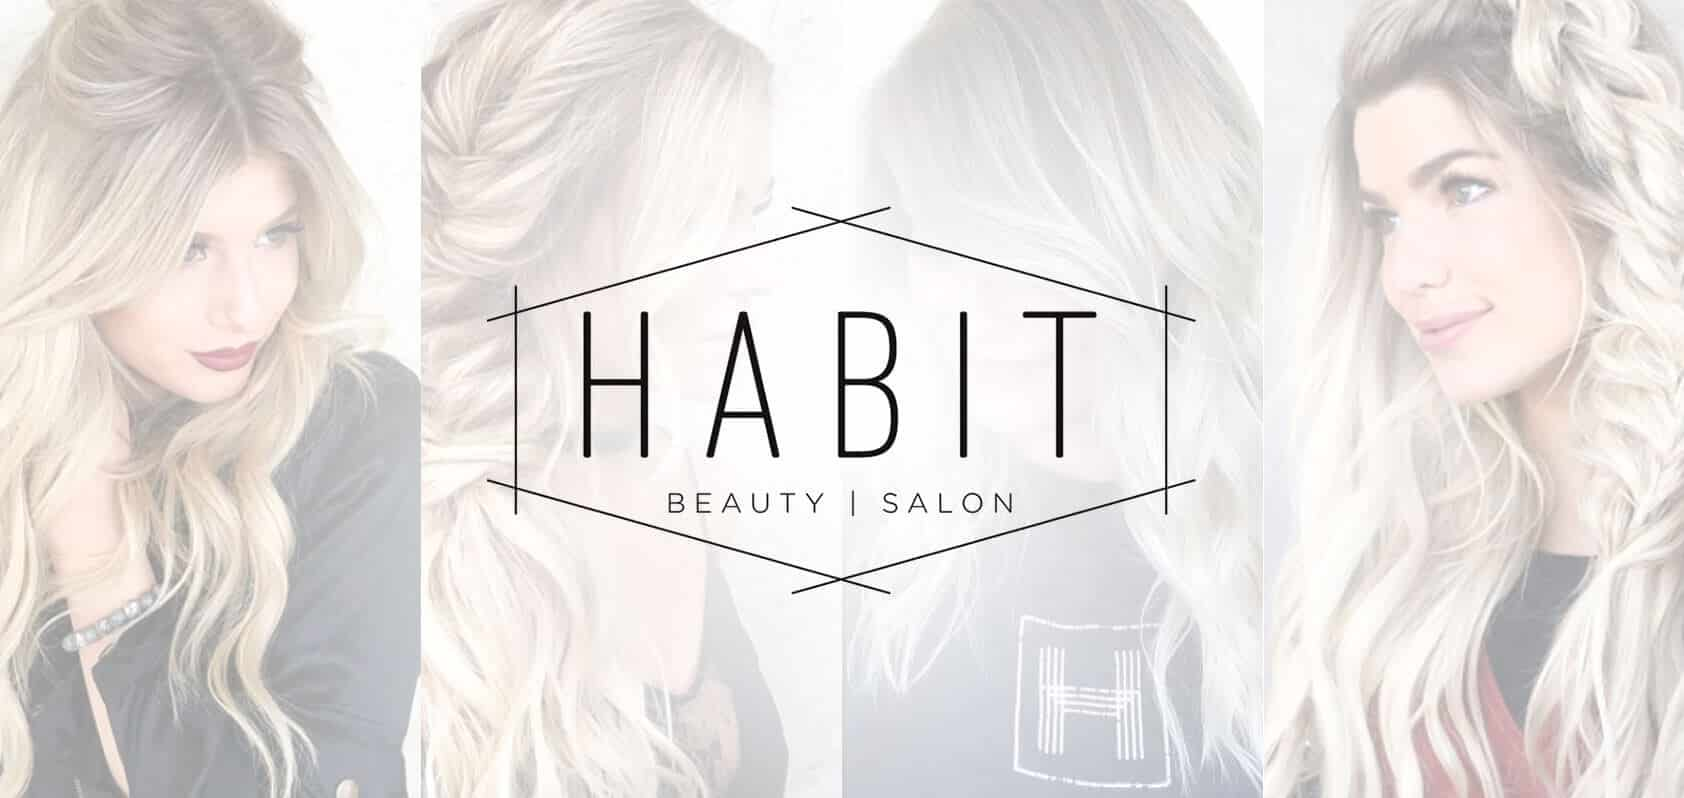 Habit comes to the salon to teach at The Hair Standard